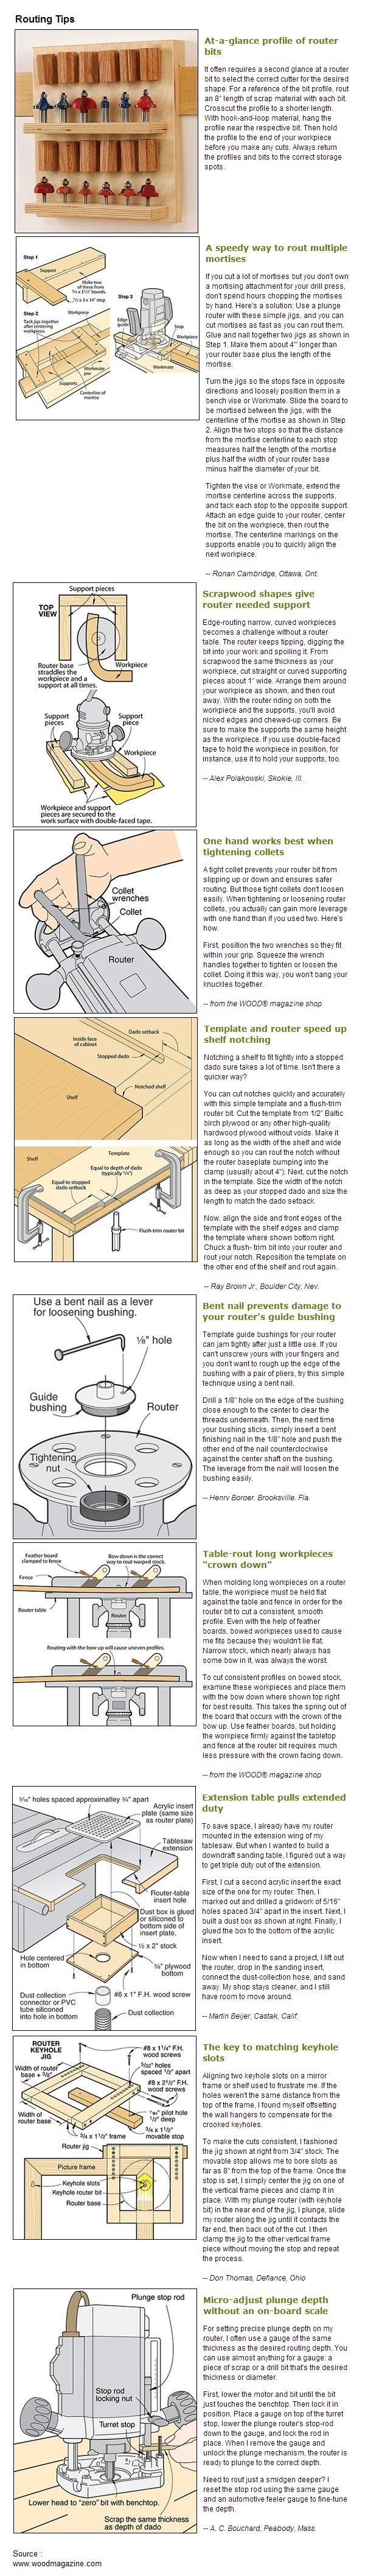 281 best wood working router images on pinterest carpentry